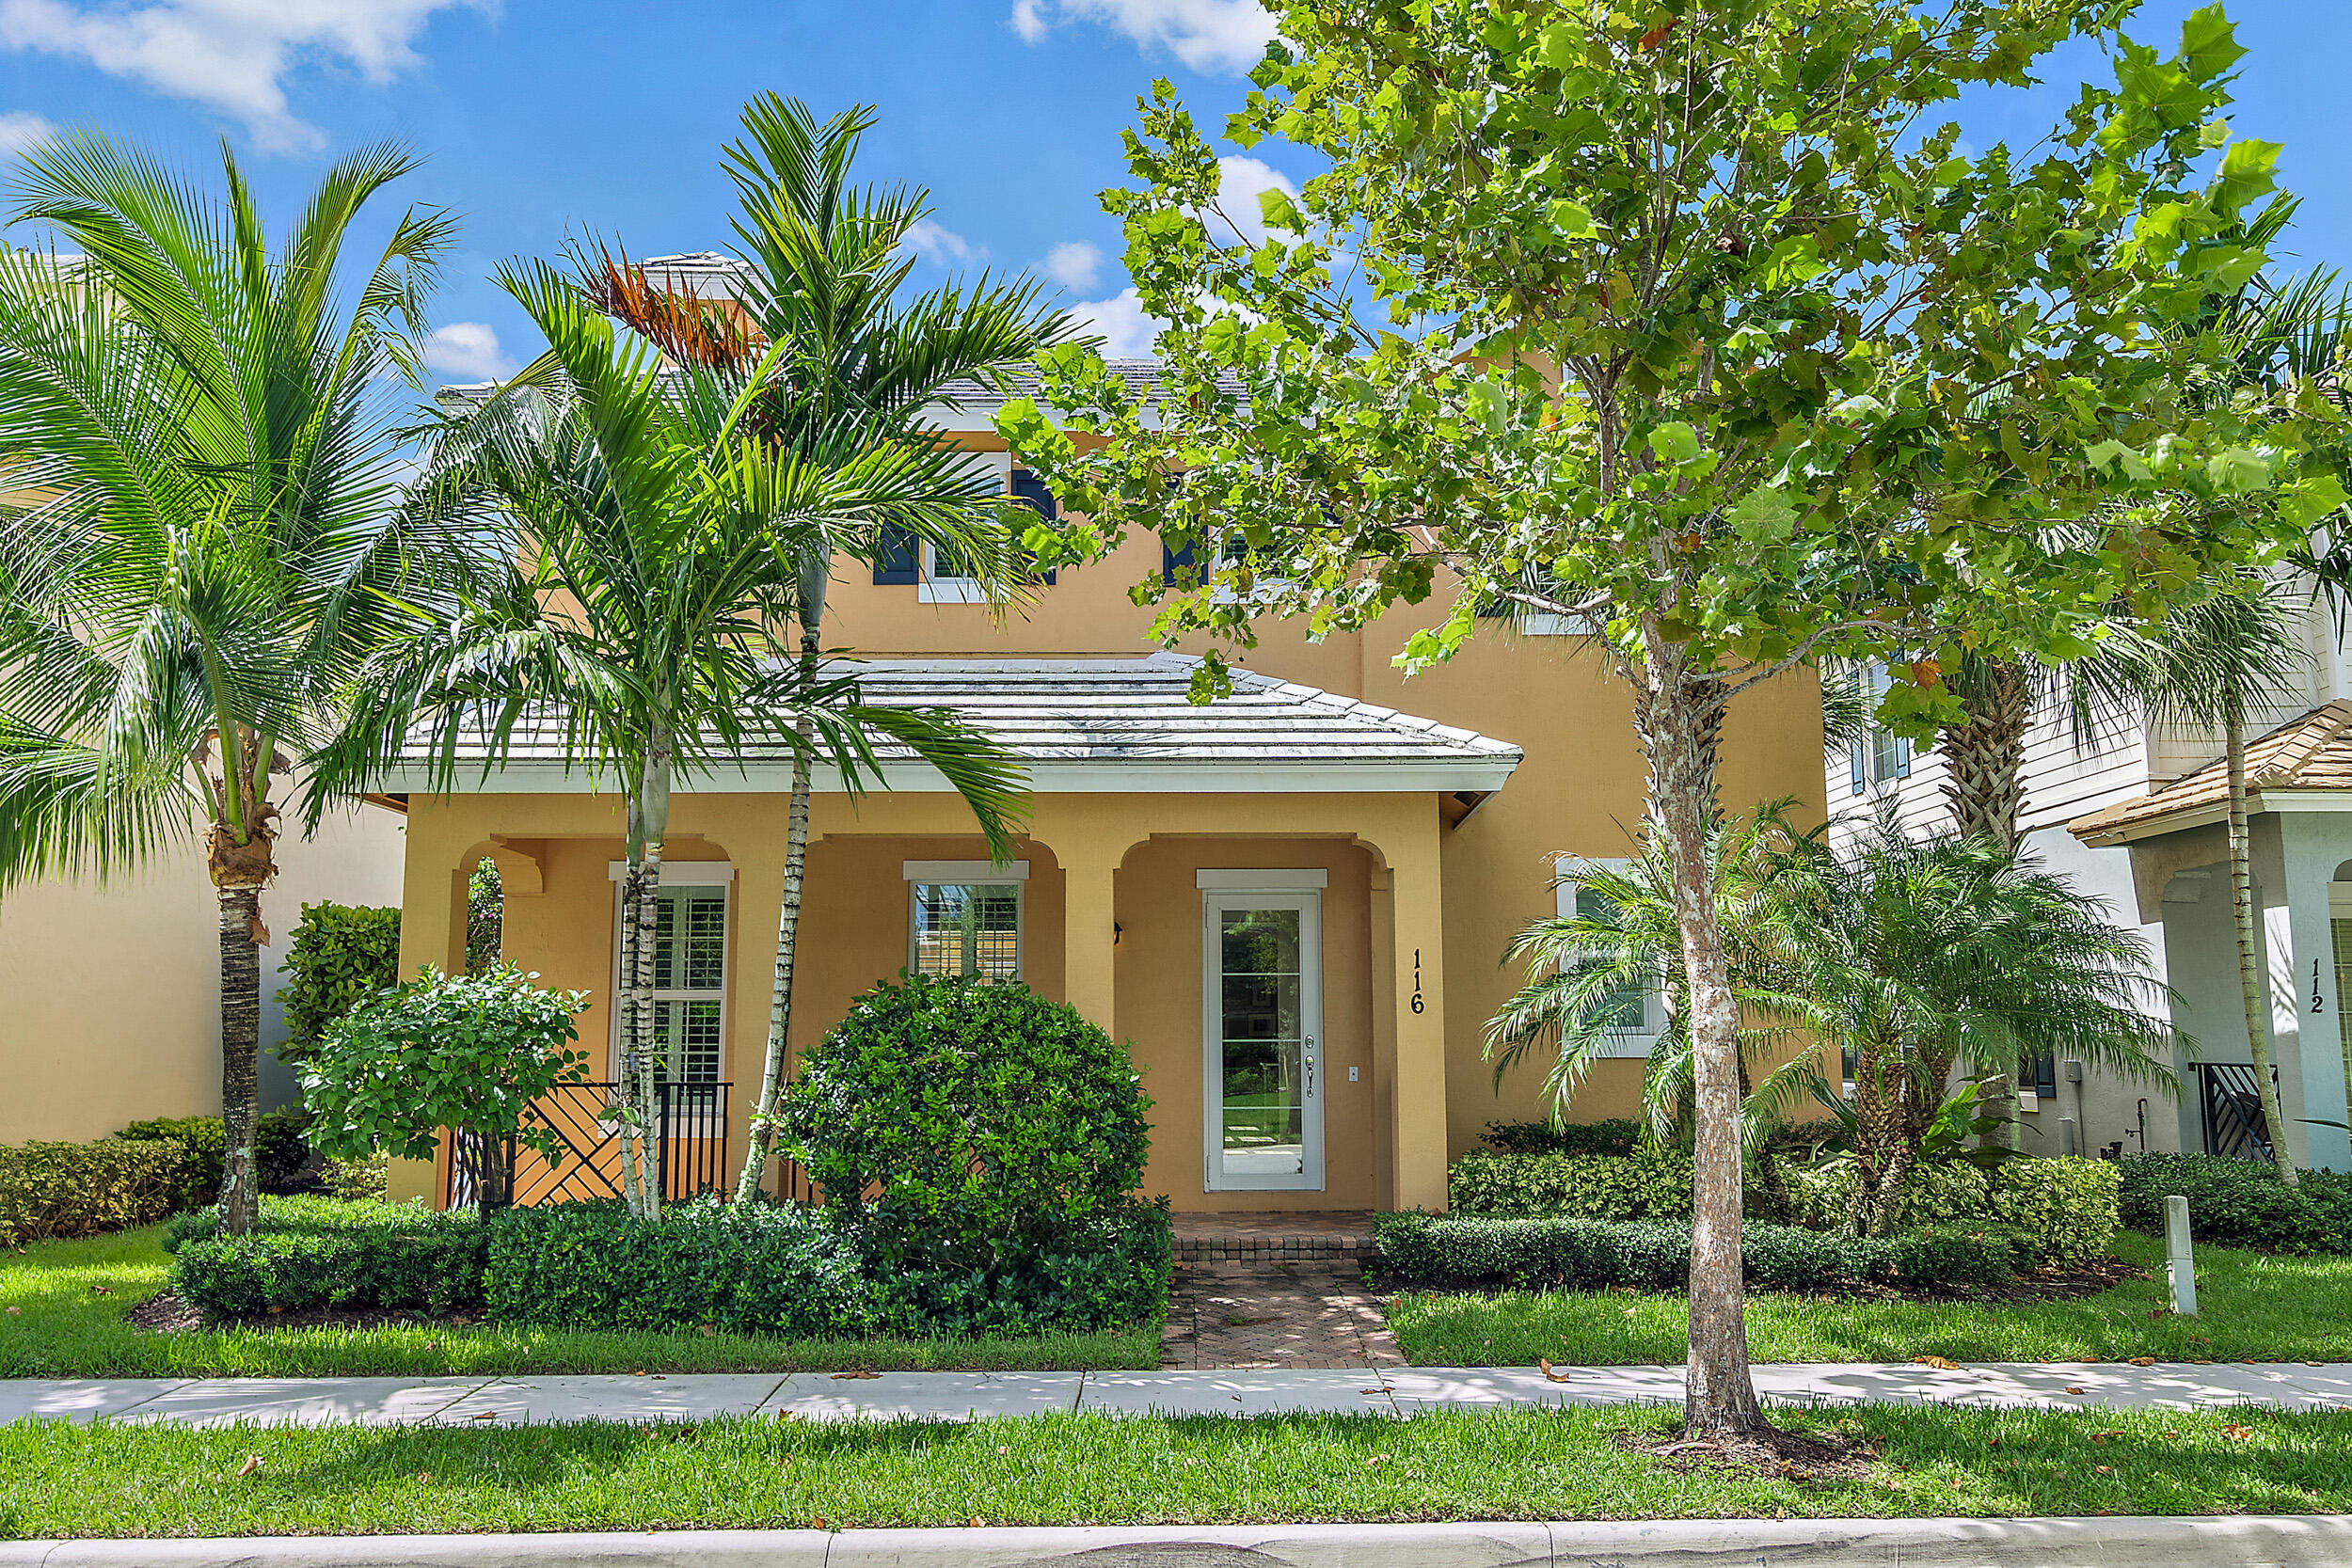 Don't miss this amazing opportunity to own a 2014 single family home in Jupiter. It feels like living in a brand new house! This house is not only well kept but it has been meticulously cared for. It is located in the highly desirable neighborhood of Botanica. This home offers over 3,100 sqft of living space, a private patio with a pool and is situated in a premium location across the street from a newly renovated green area. This home has 4 bedrooms, 3.1 bathrooms and 1 den perfect for a playroom or a home office. The first floor has nicely updated wood-like porcelain tile, an open kitchen with quartz countertops and 2014 stainless steel appliances, plantation shutters, roll up shades, custom sheers in the great room and updated light fixtures. Other features include impact windows throughout the house, a 2-car garage, 2014 tile roof, 2014 AC and a 2014 water heater. Schedule your appointment and come see this house NOW